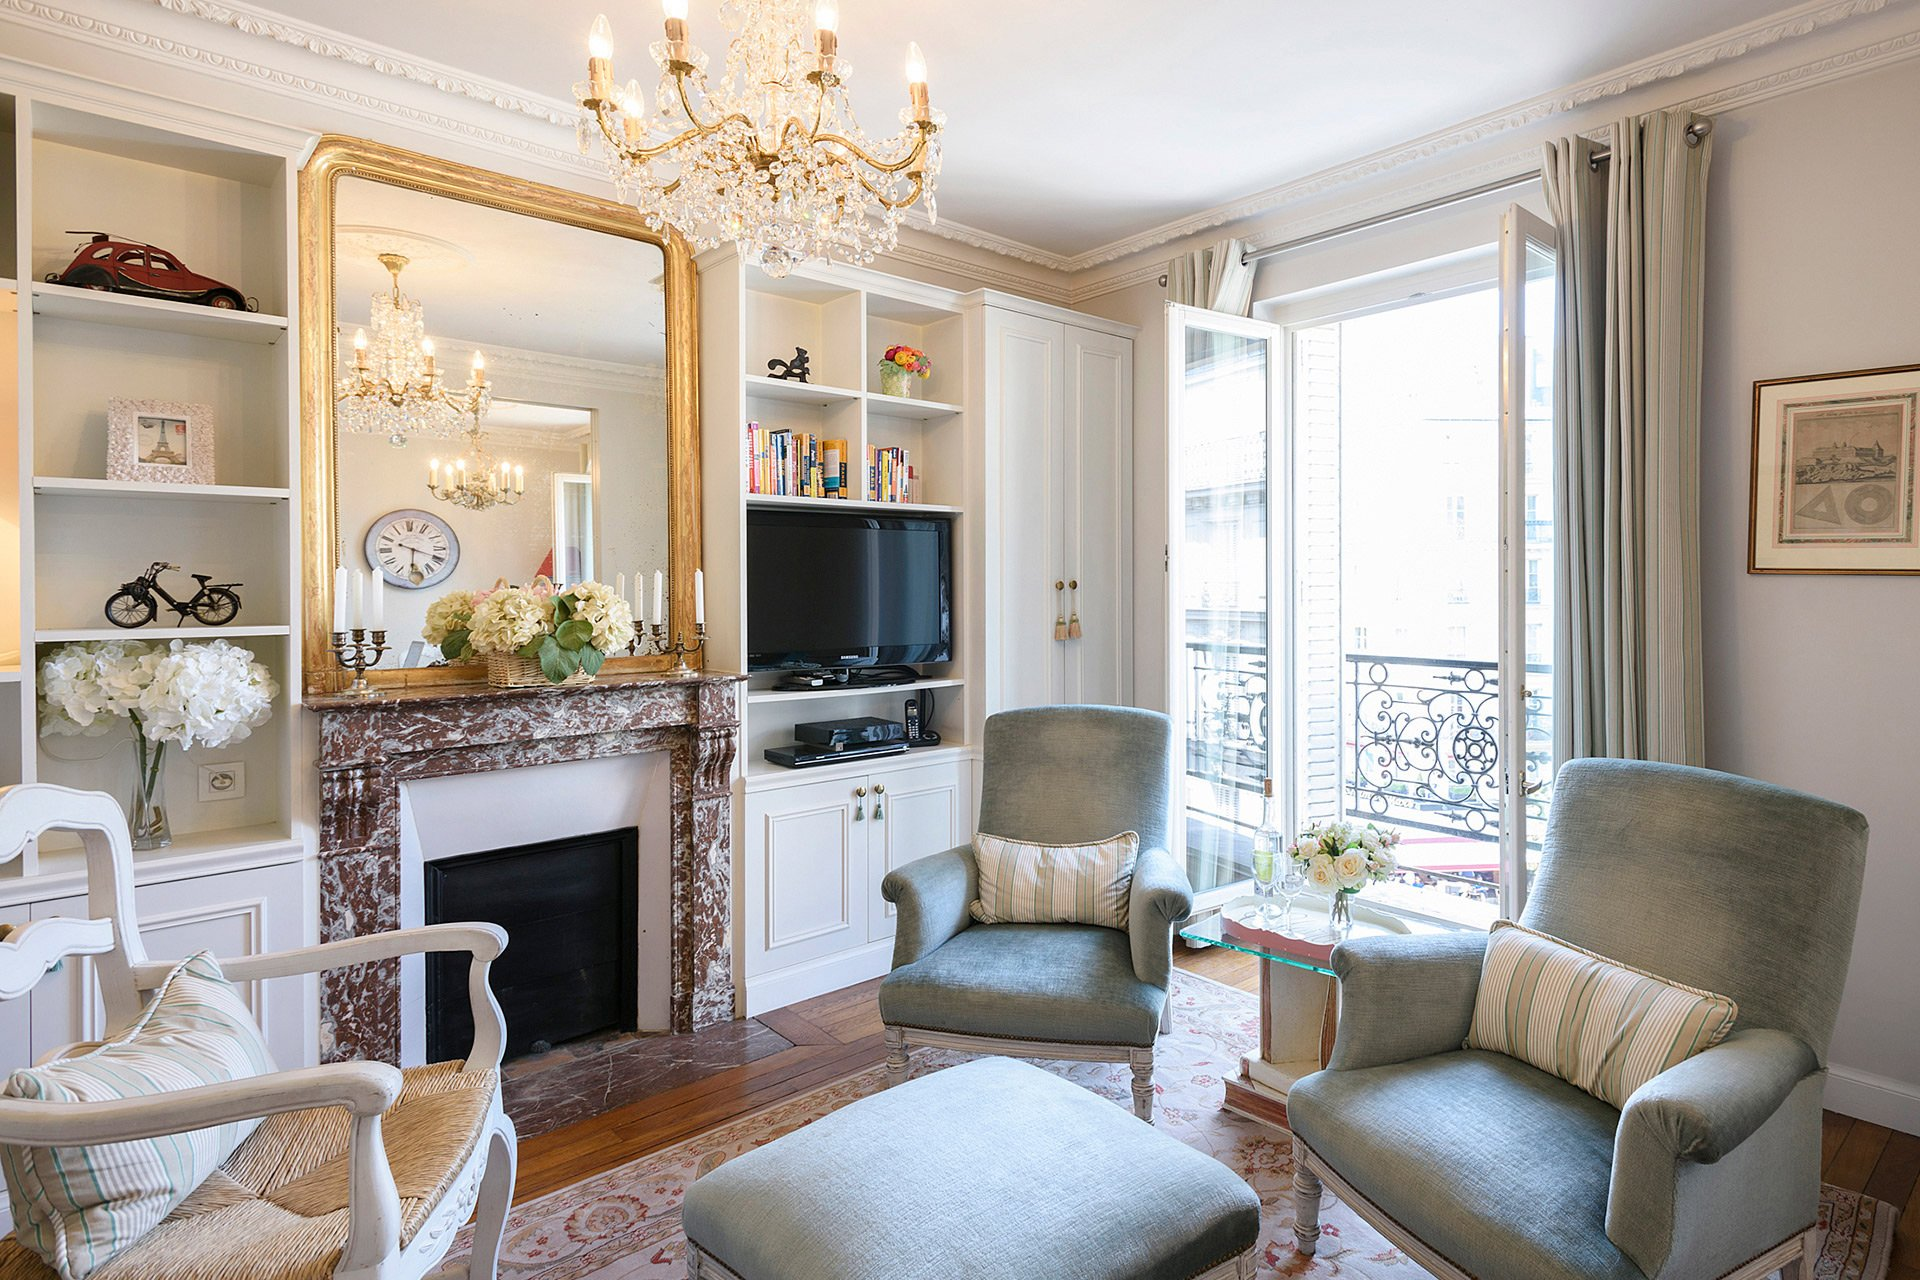 Living area is flooded with sunlight in the Clairette vacation rental offered by Paris Perfect